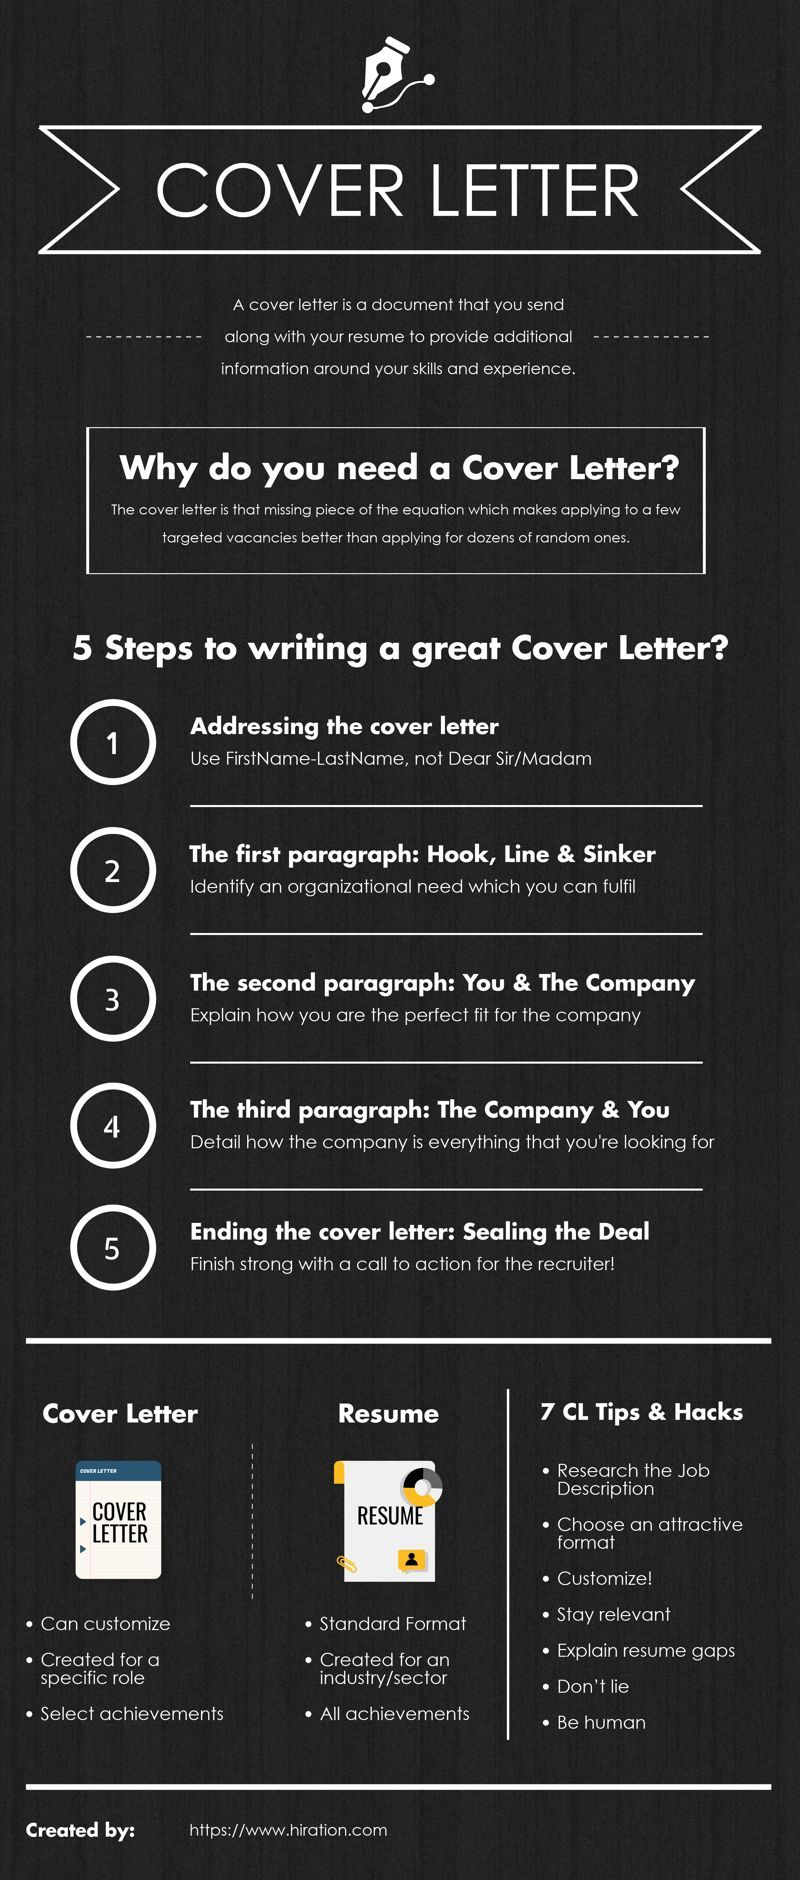 Basics of a Cover Letter What Why How Tips etc